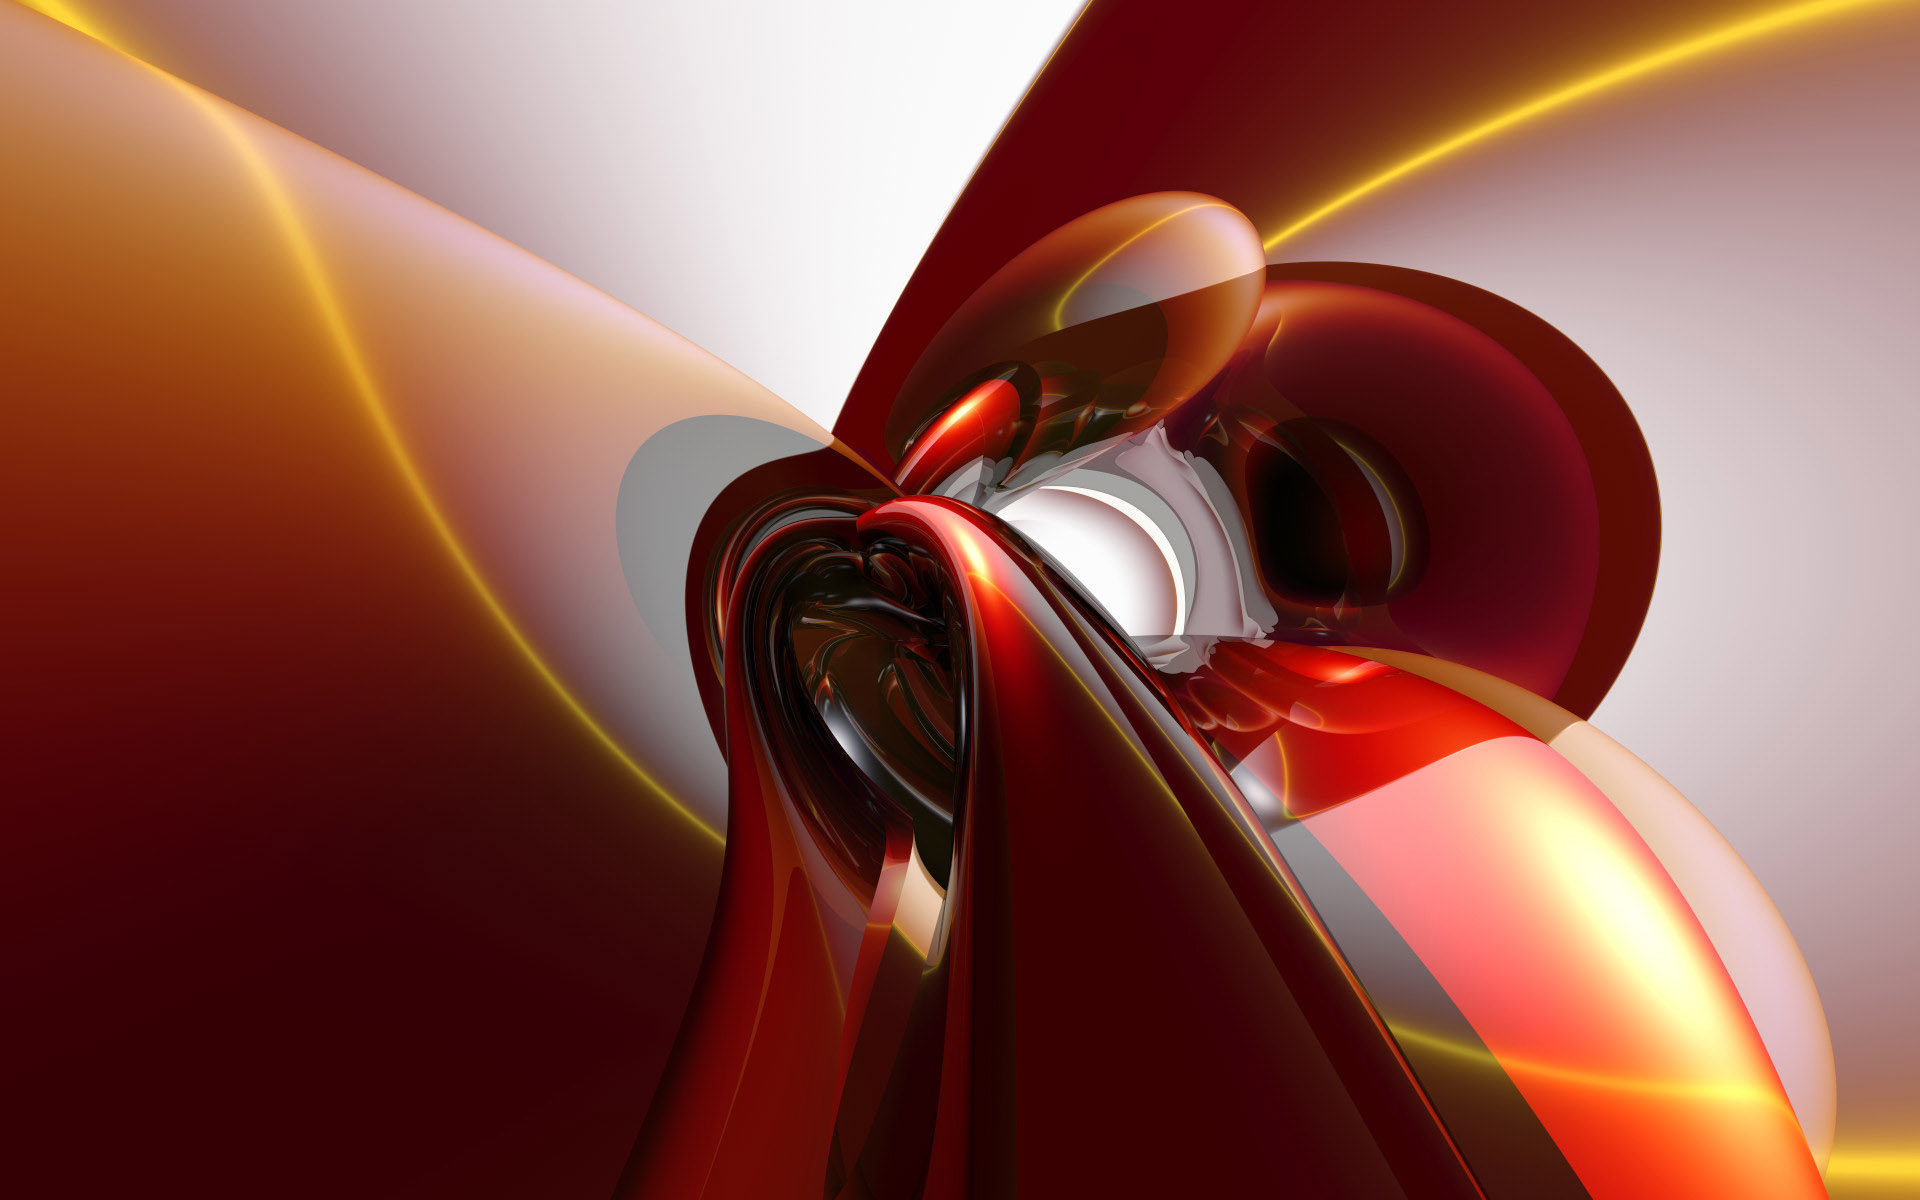 Abstract In Red And White Design 230387 Wallpaper wallpaper